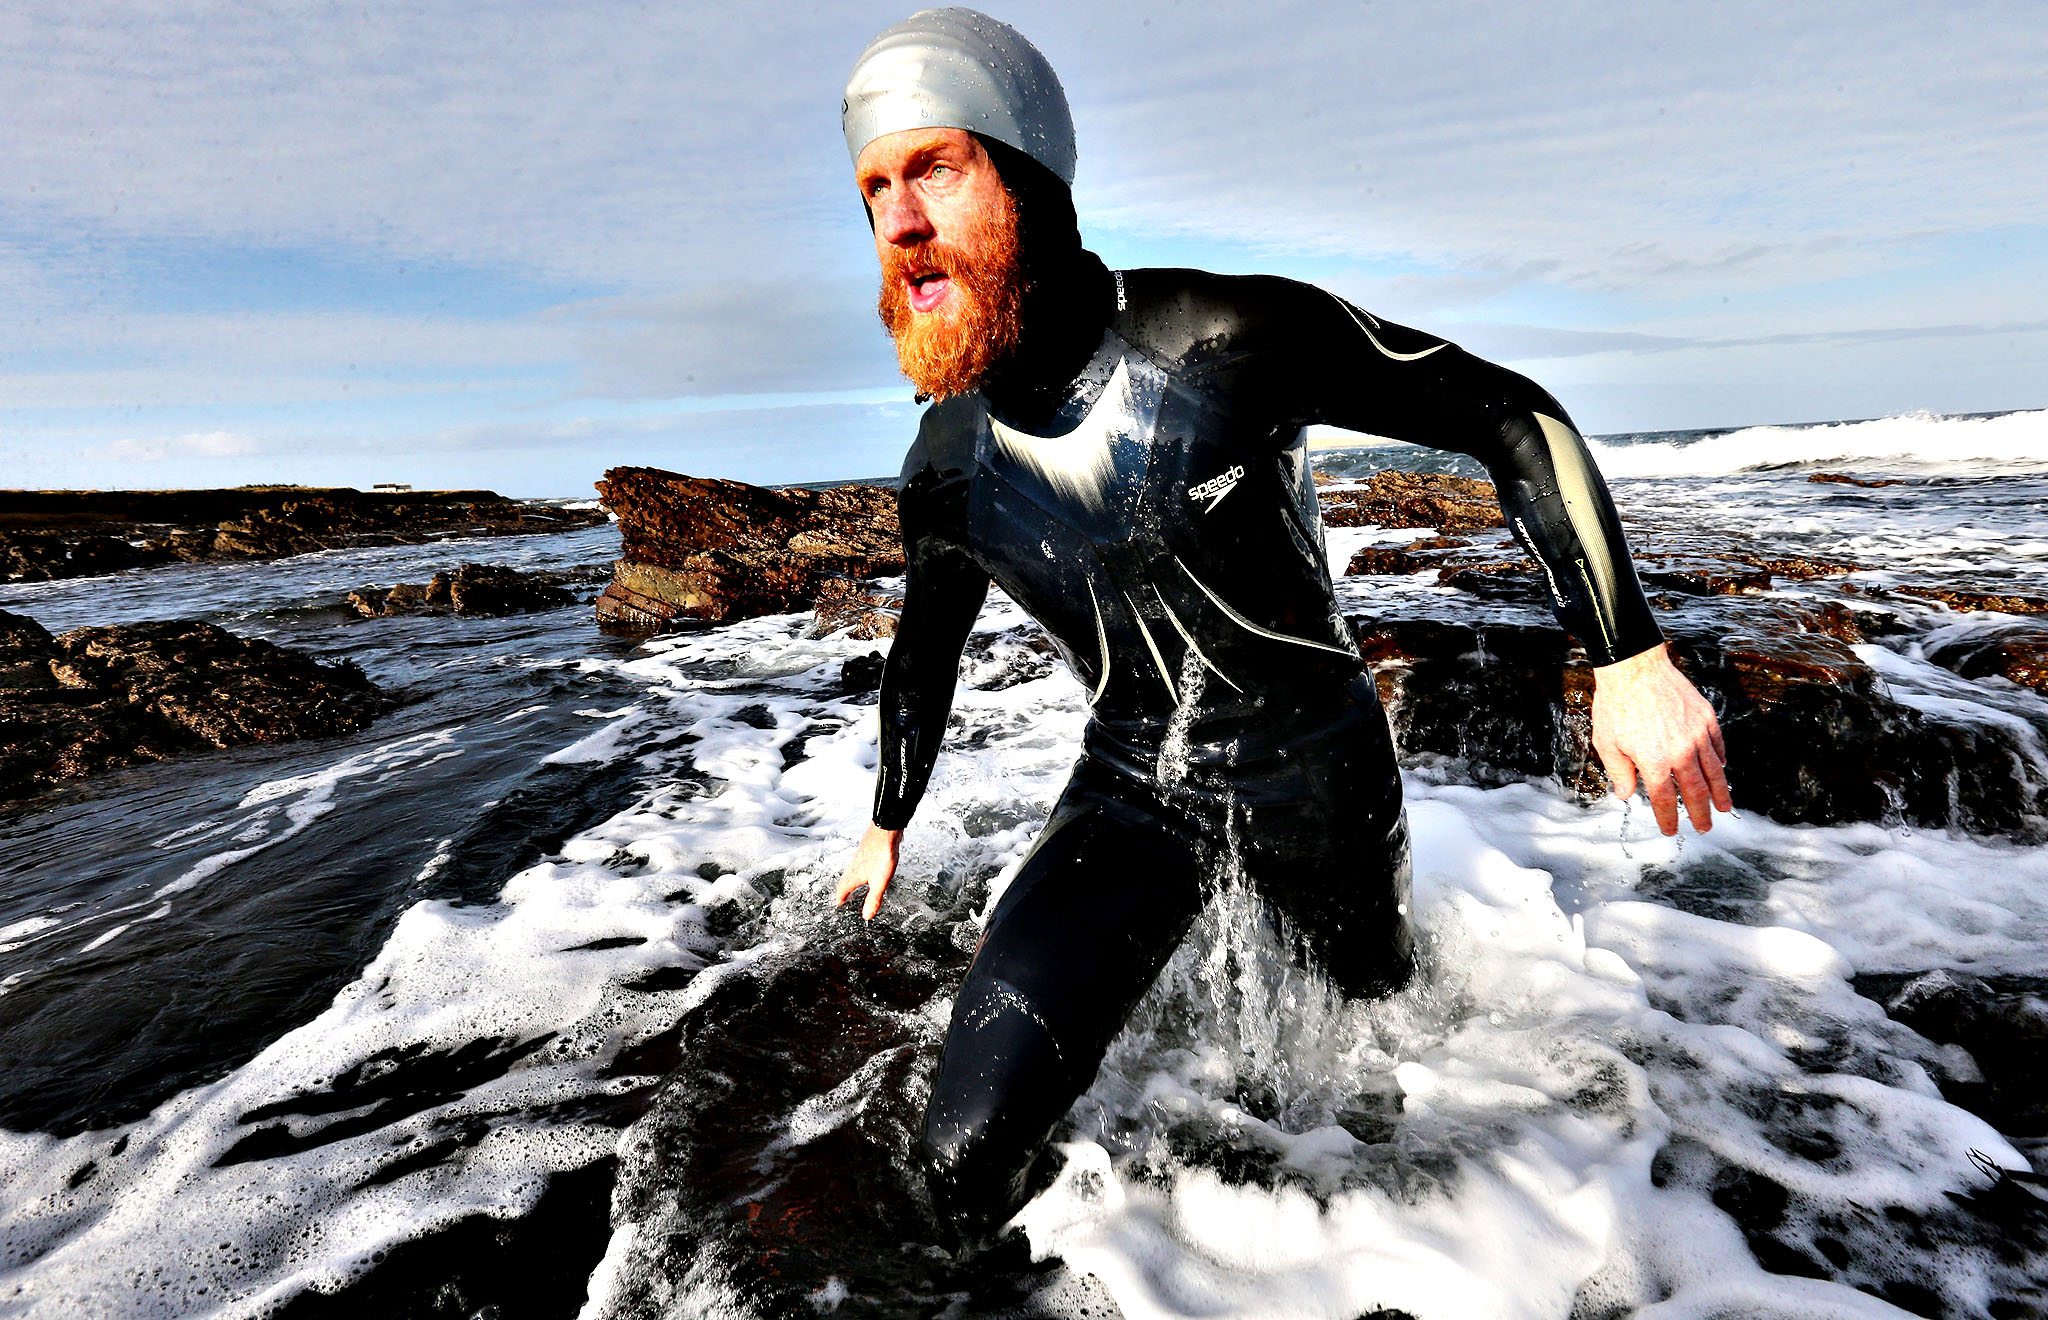 Charity swimmer Sean Conway, 32, arriving at John O'Groats, in the north of Scotland, after being the first person to swim from Lands End to John O'Groats.